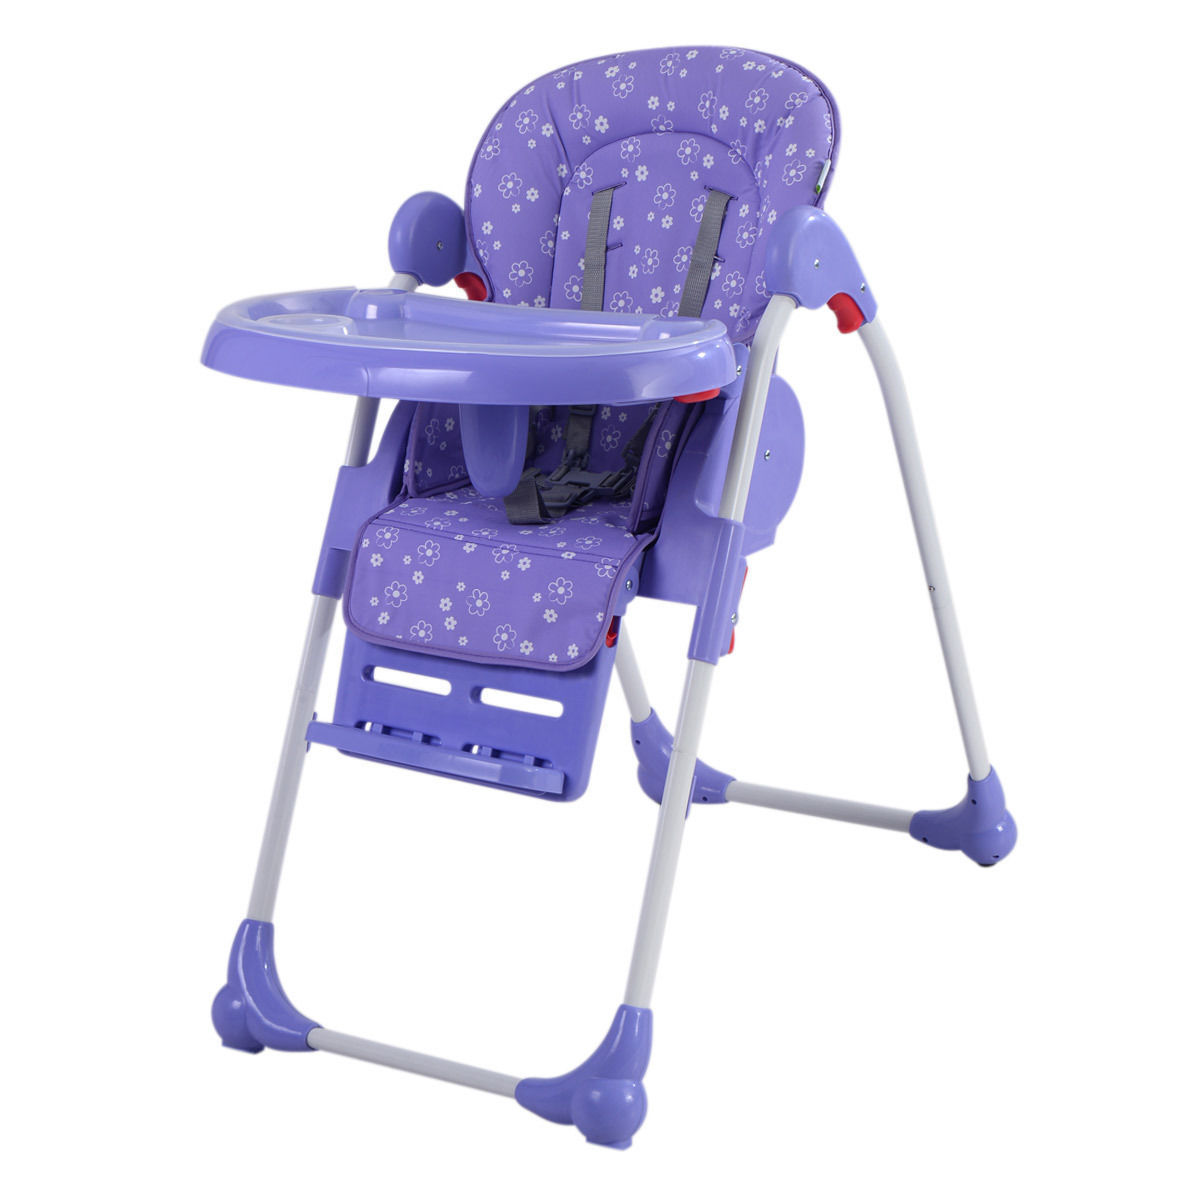 GHP 33-Lbs Capacity Purple Portable Folding Feeding Booster Seat Toddler High Chair